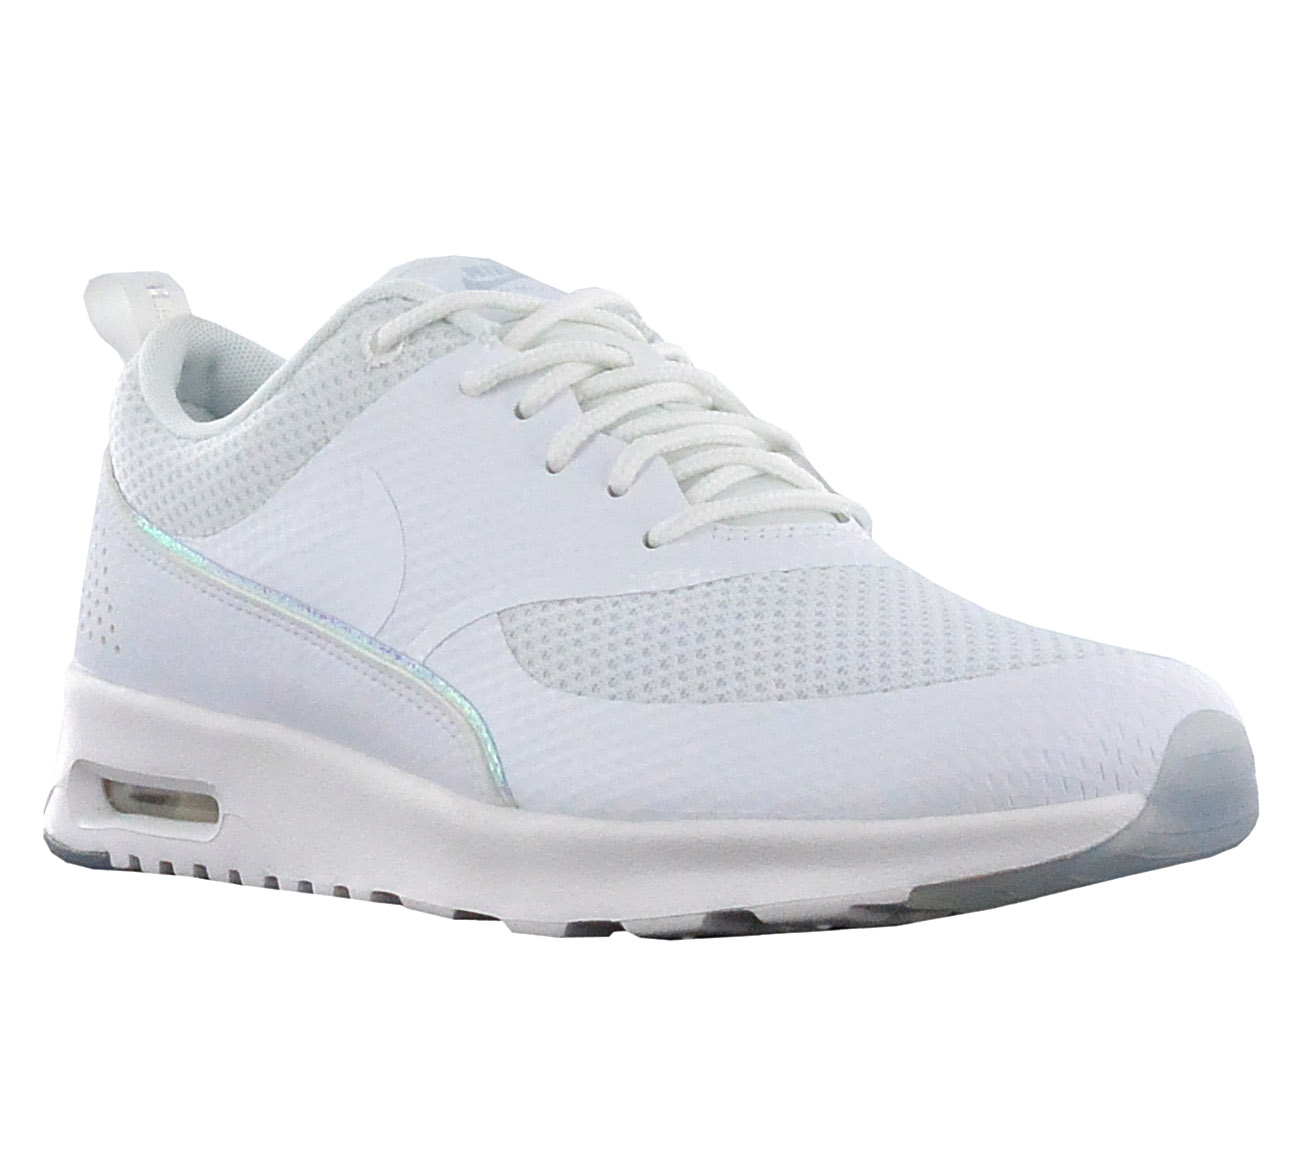 Nike damen sneaker air max thea premium wei schuhe for 104 1 the fish